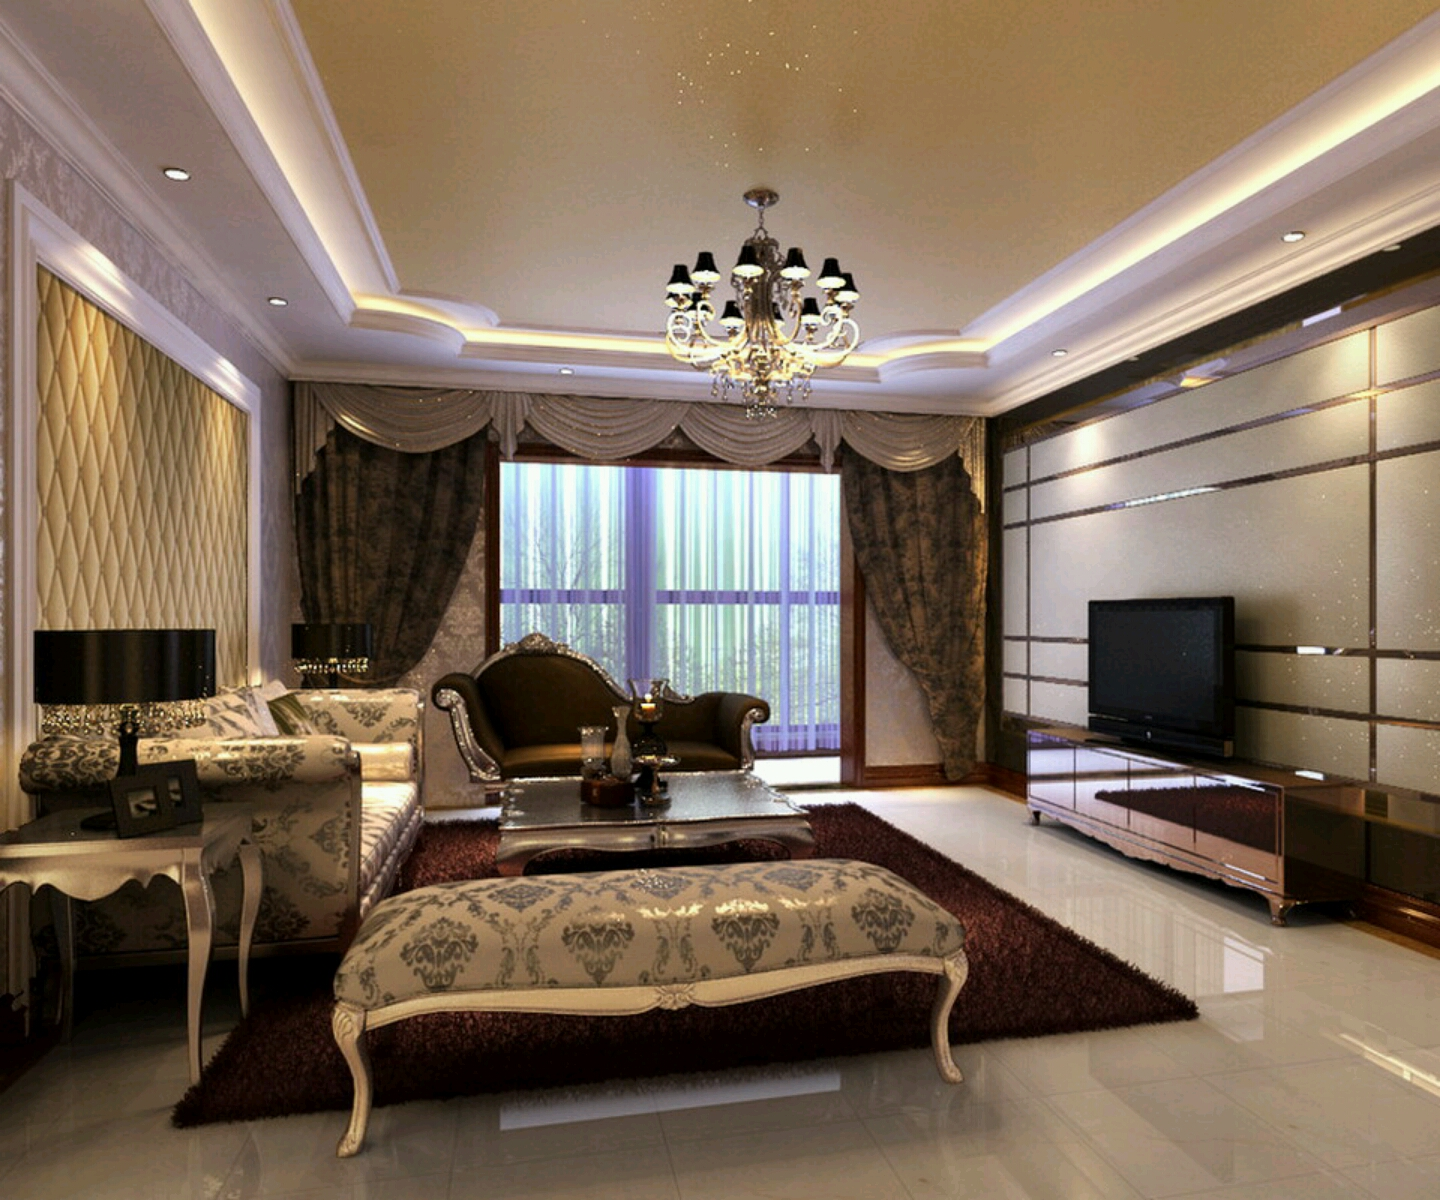 interior decorating ideas living rooms dream house experience. Black Bedroom Furniture Sets. Home Design Ideas